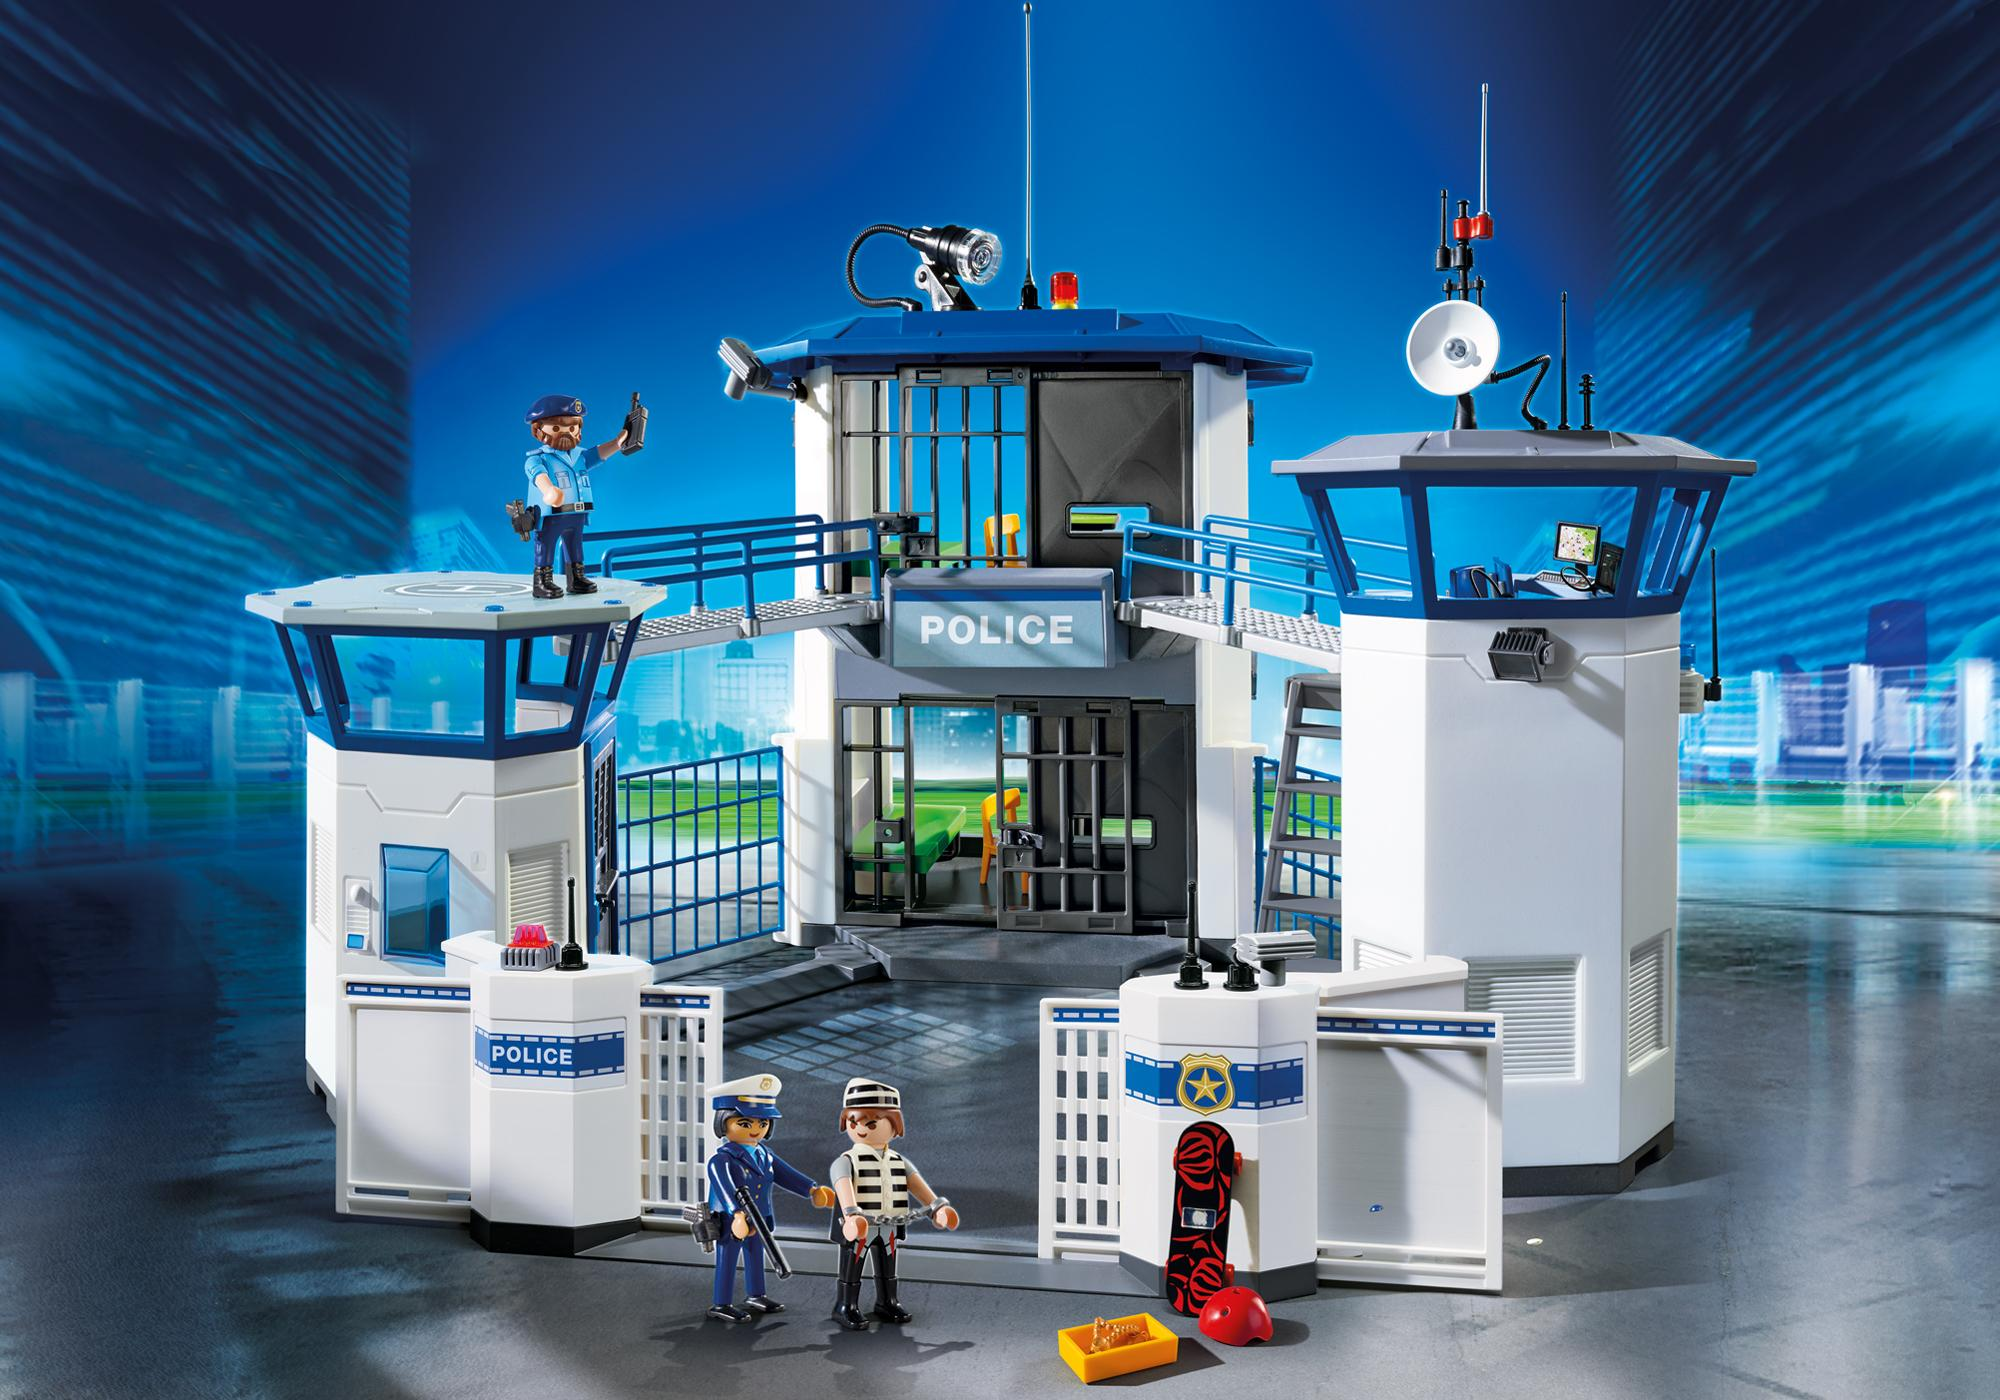 http://media.playmobil.com/i/playmobil/6919_product_detail/Polishuvudkontor med fängelse